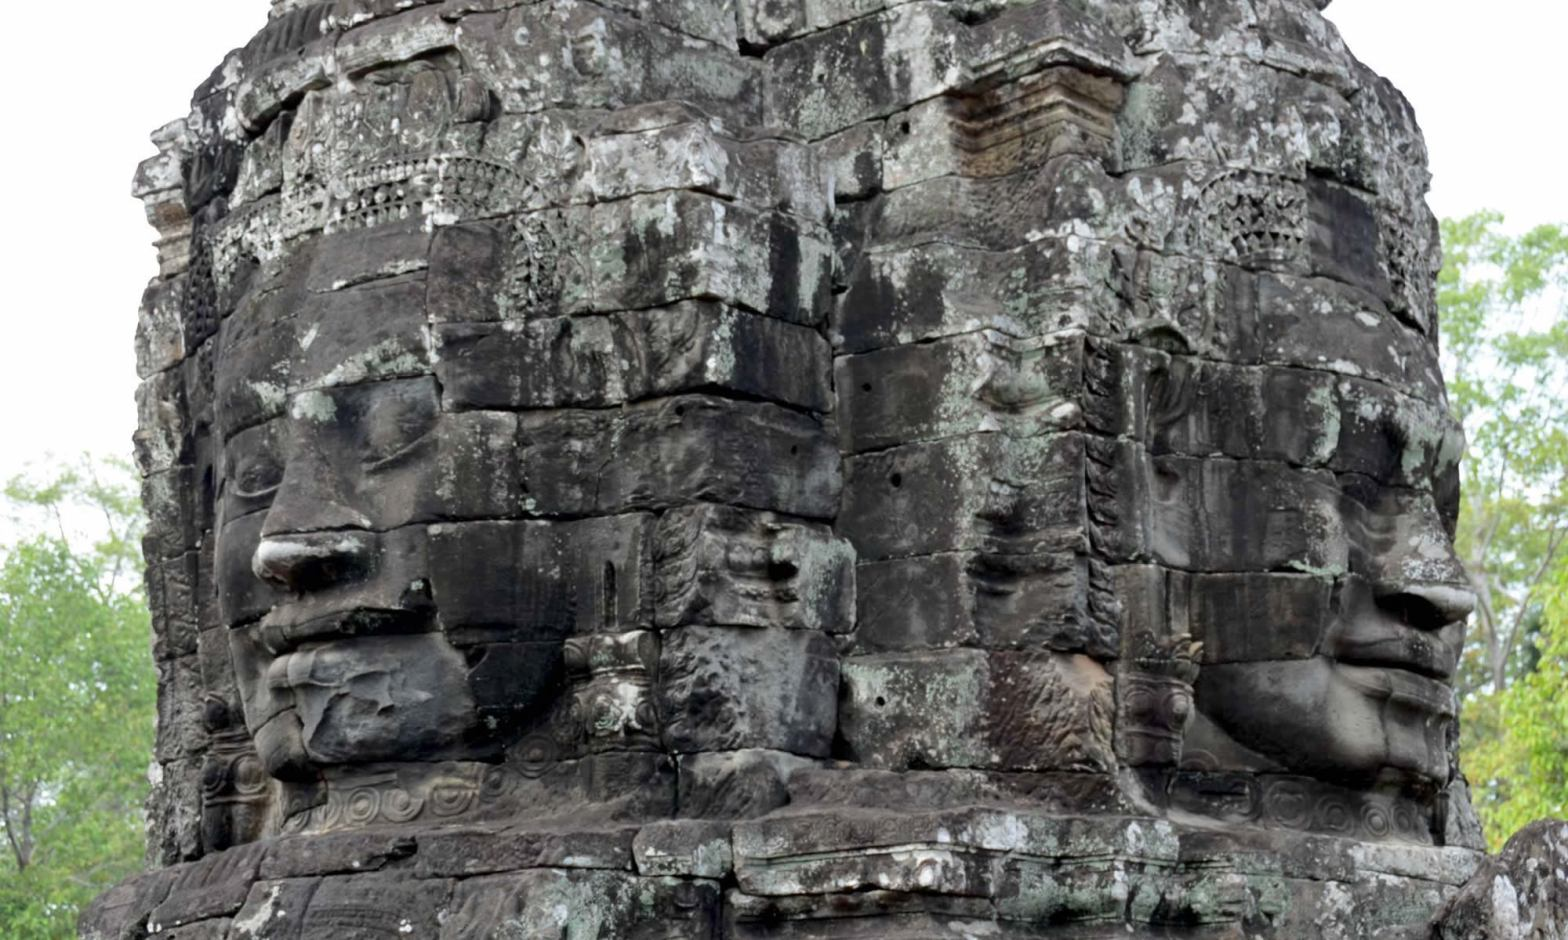 The remnants of two smiling faces adorn the Bayon Temple in Angkor Thom, Cambodia.